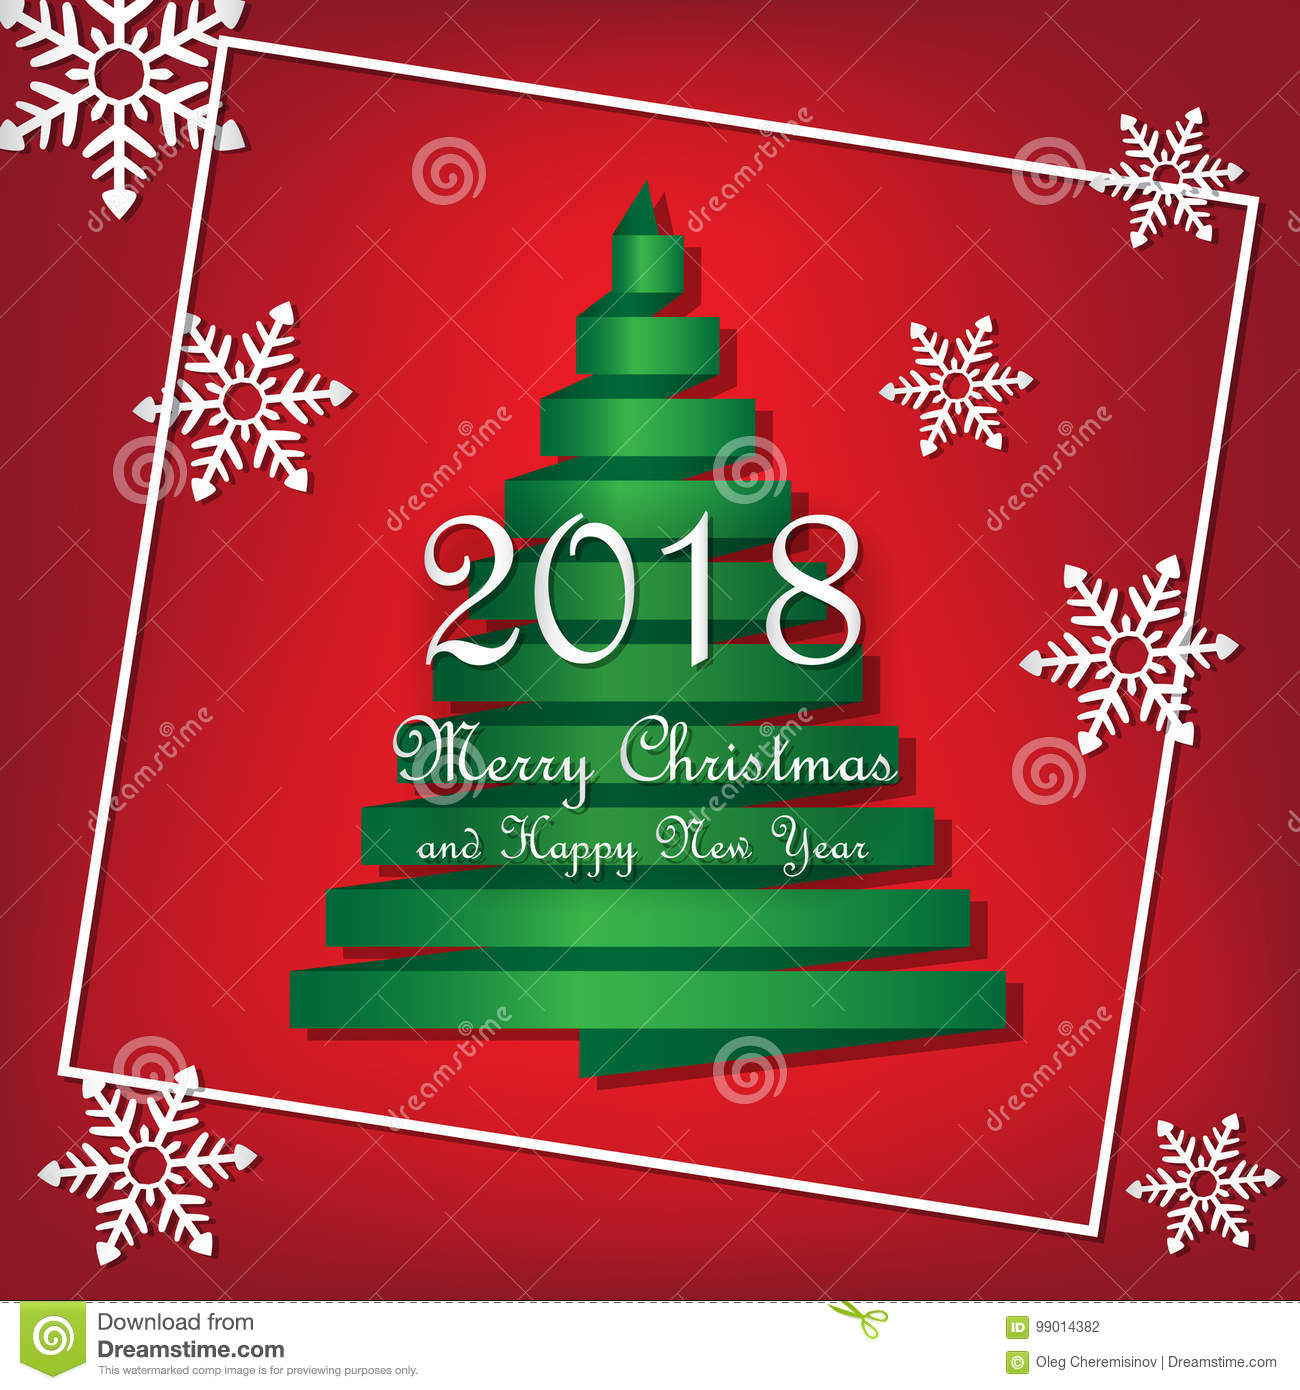 download 2018 merry christmas and happy new year template vector green ribbon christmas tree with